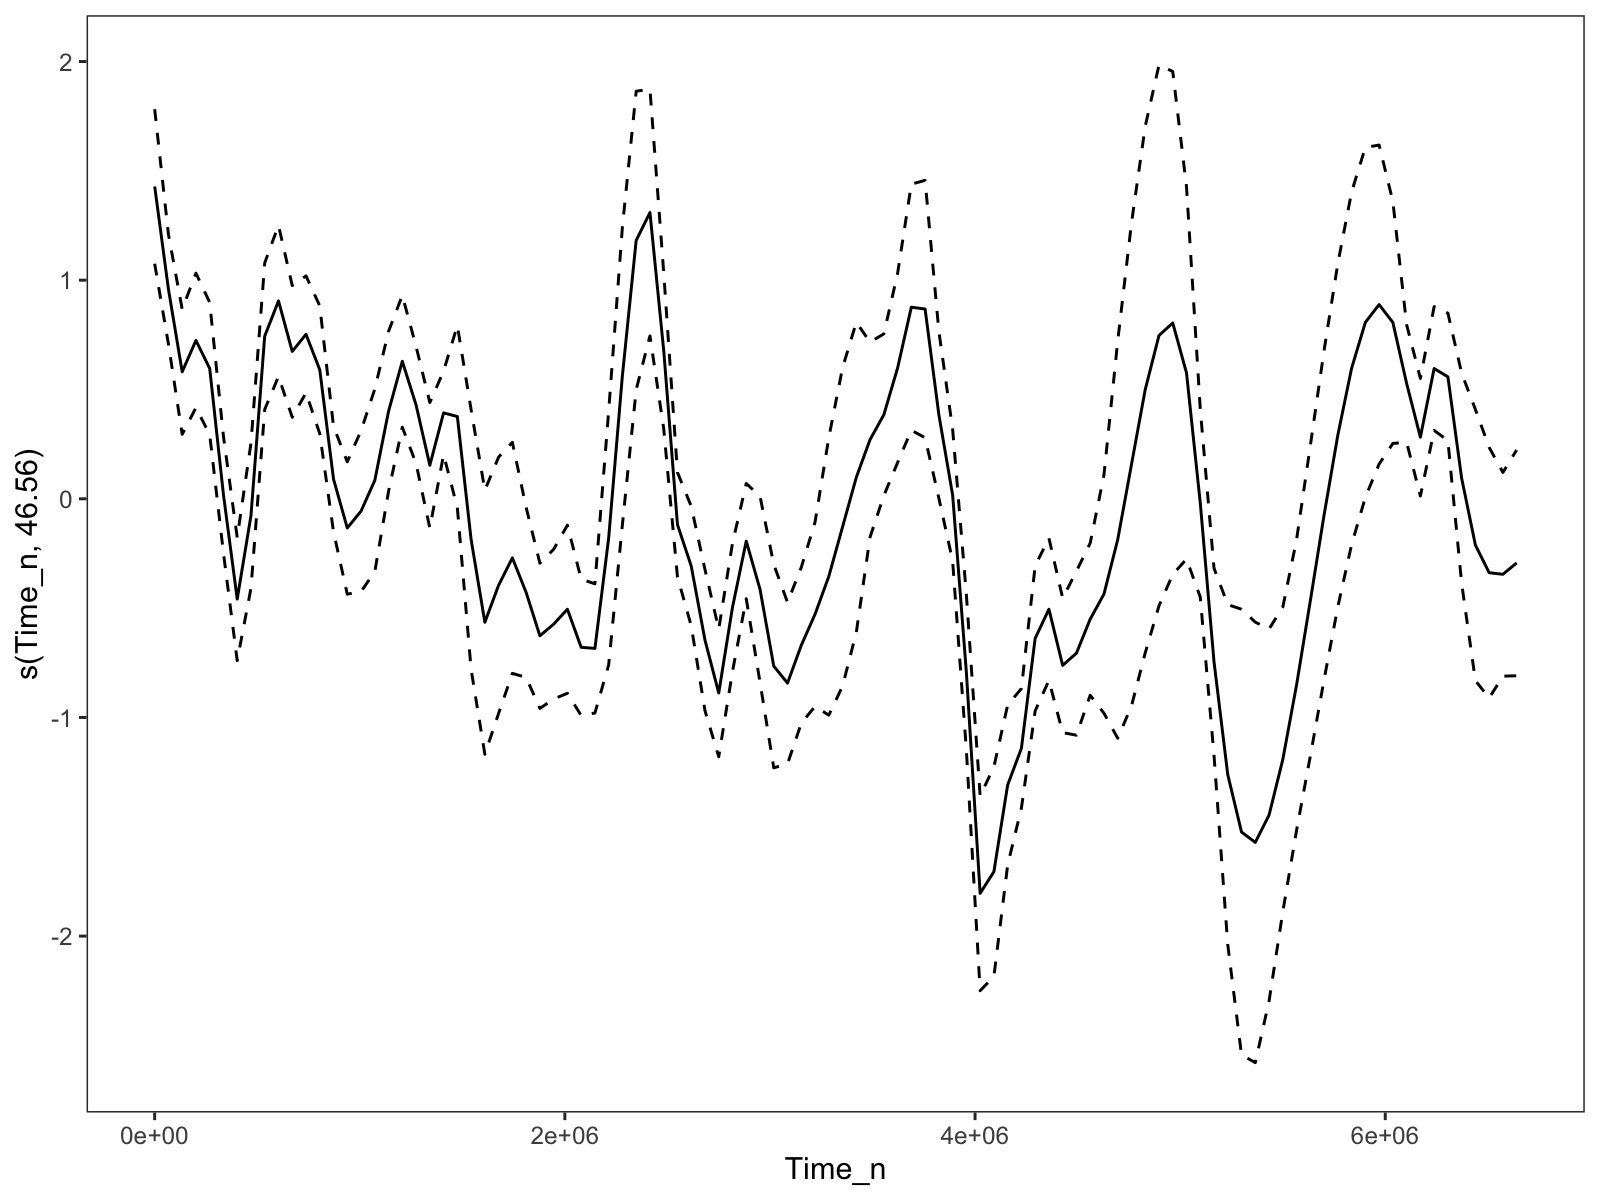 The time trend when the `k` parameter for the time smooth is set to 60. Much too wiggly.